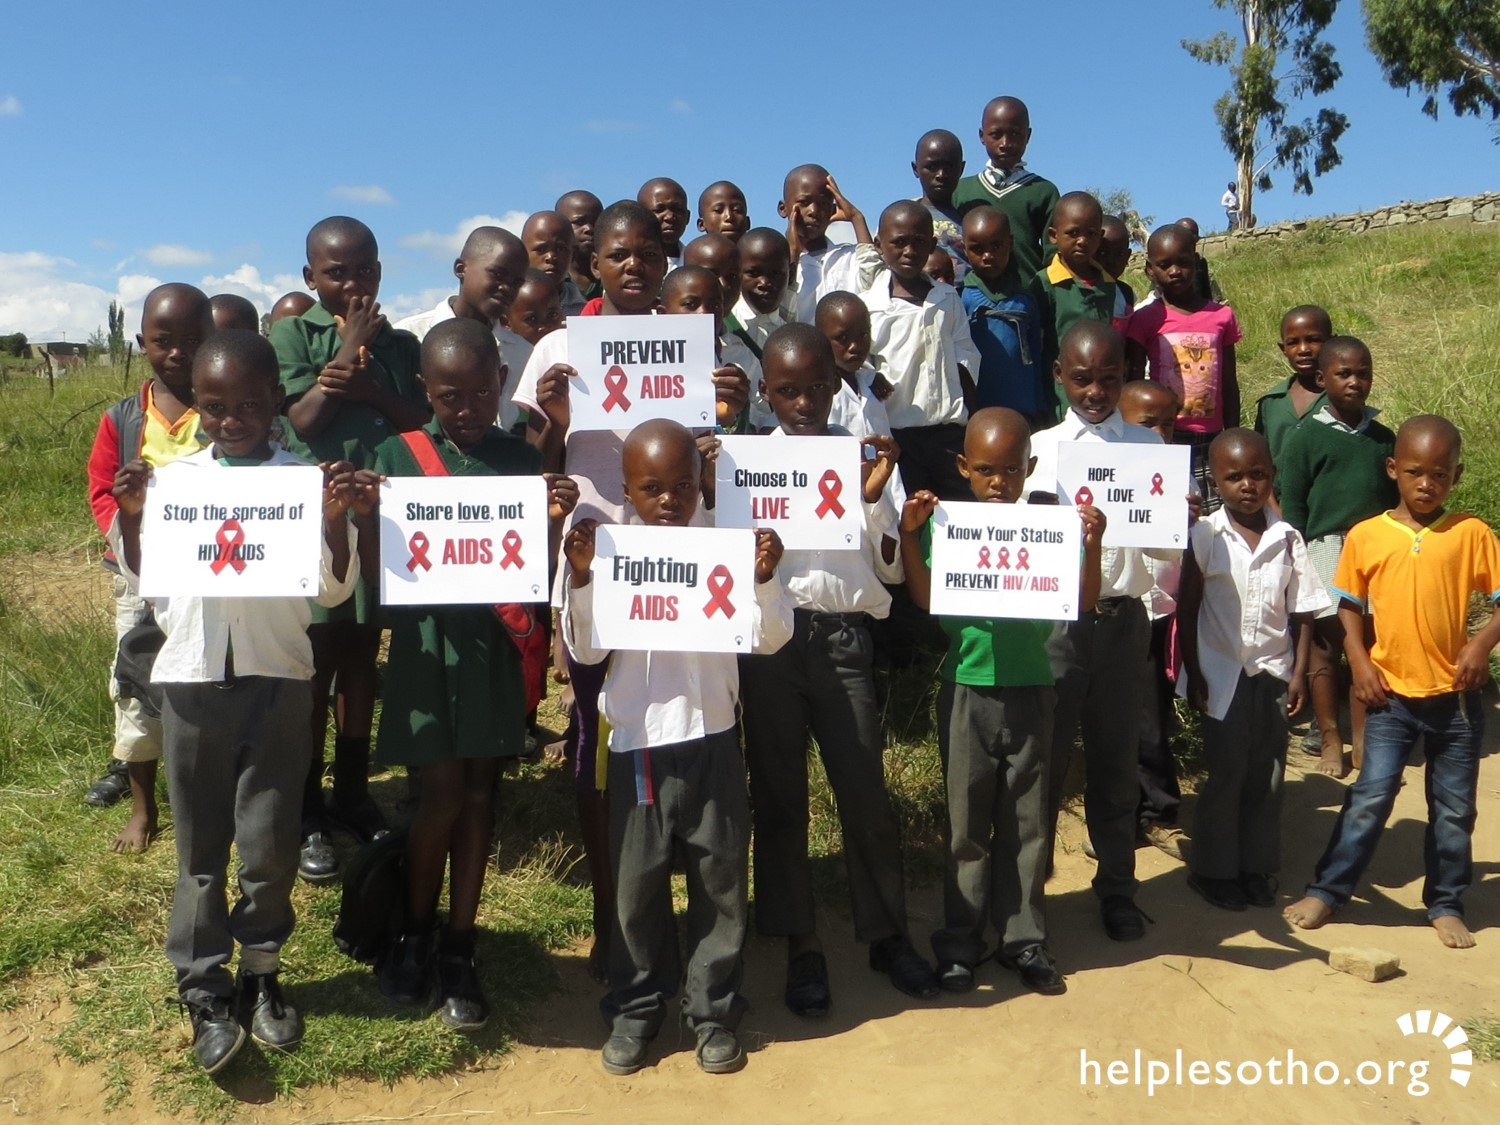 Lesotho has the world's 2nd highest HIV incidence rate